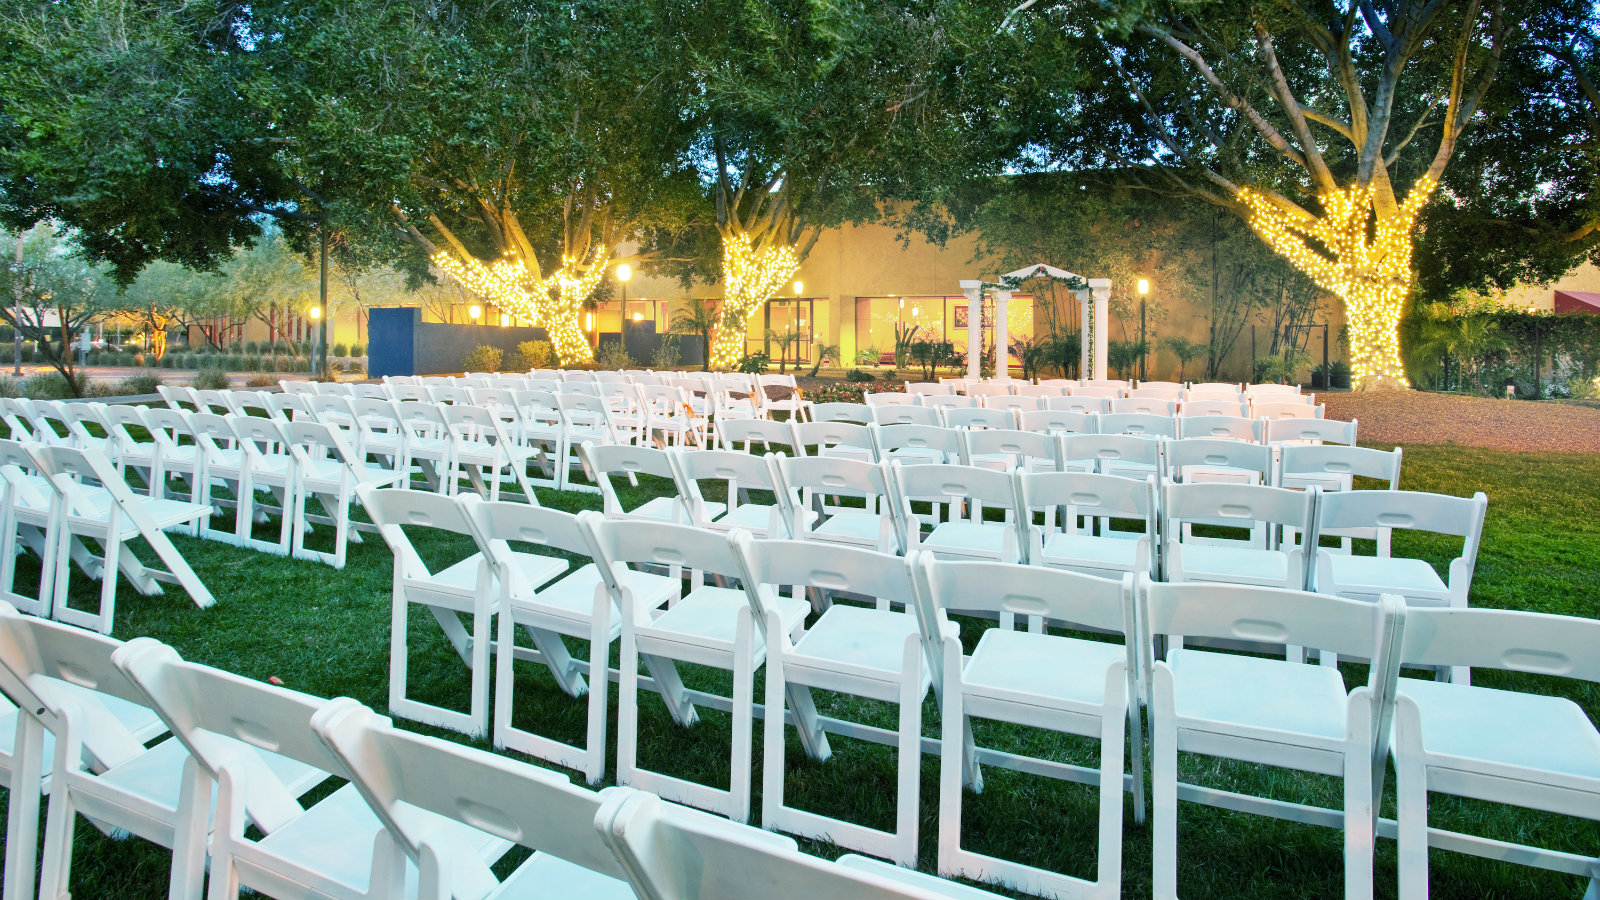 Wedding venue in phoenix four points phoenix north wedding venue in phoenix courtyard courtyard wedding venue in phoenix junglespirit Image collections